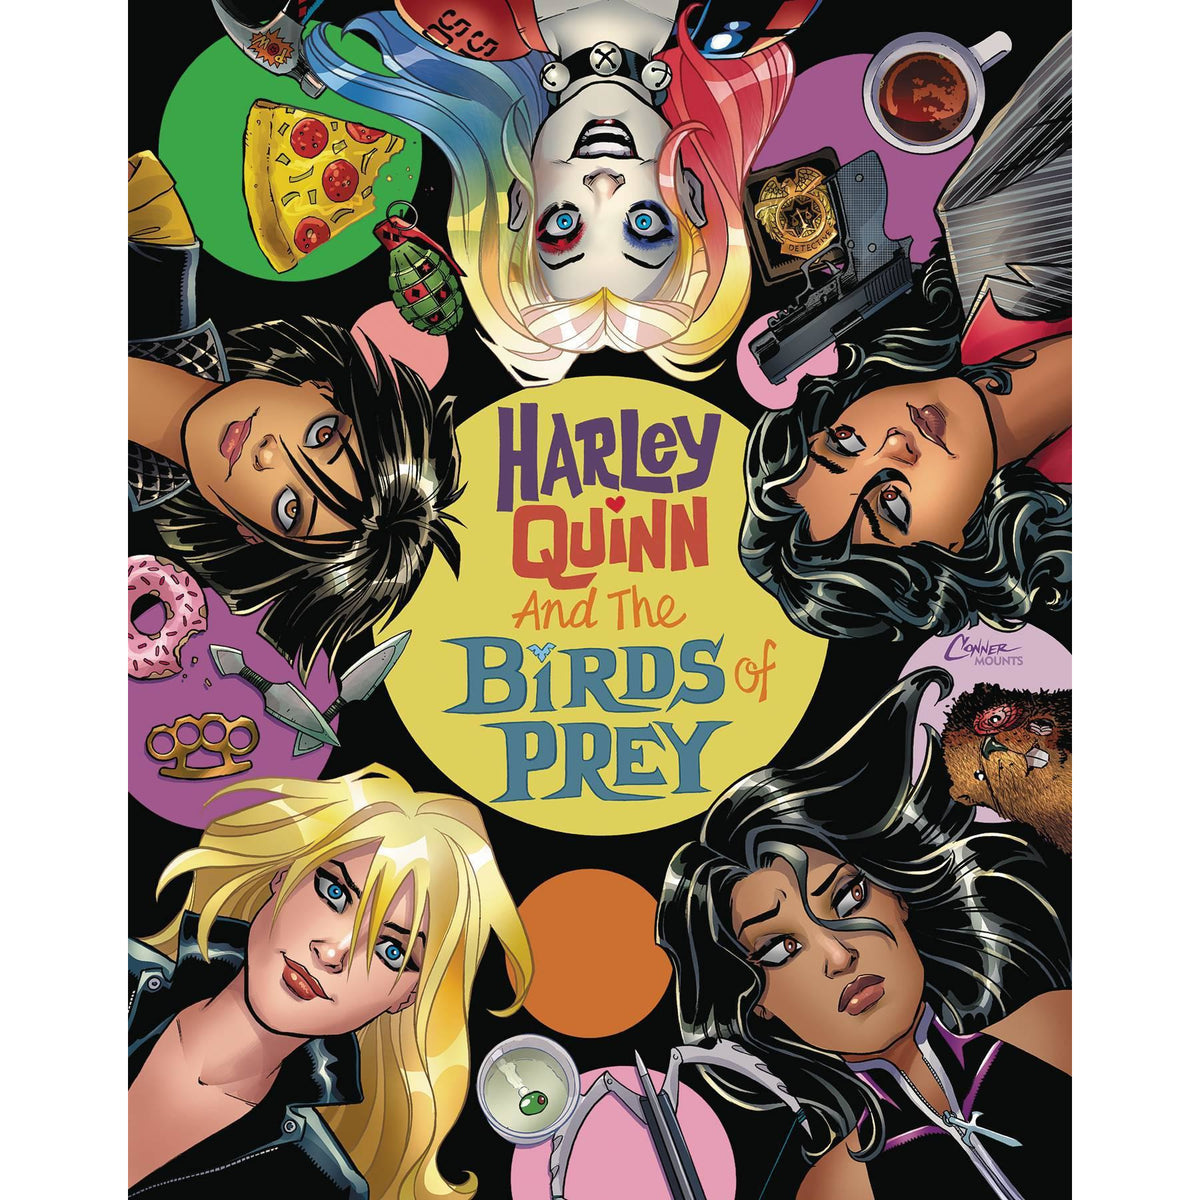 HARLEY QUINN & THE BIRDS OF PREY #2 (OF 4) - CONNER MAIN COVER